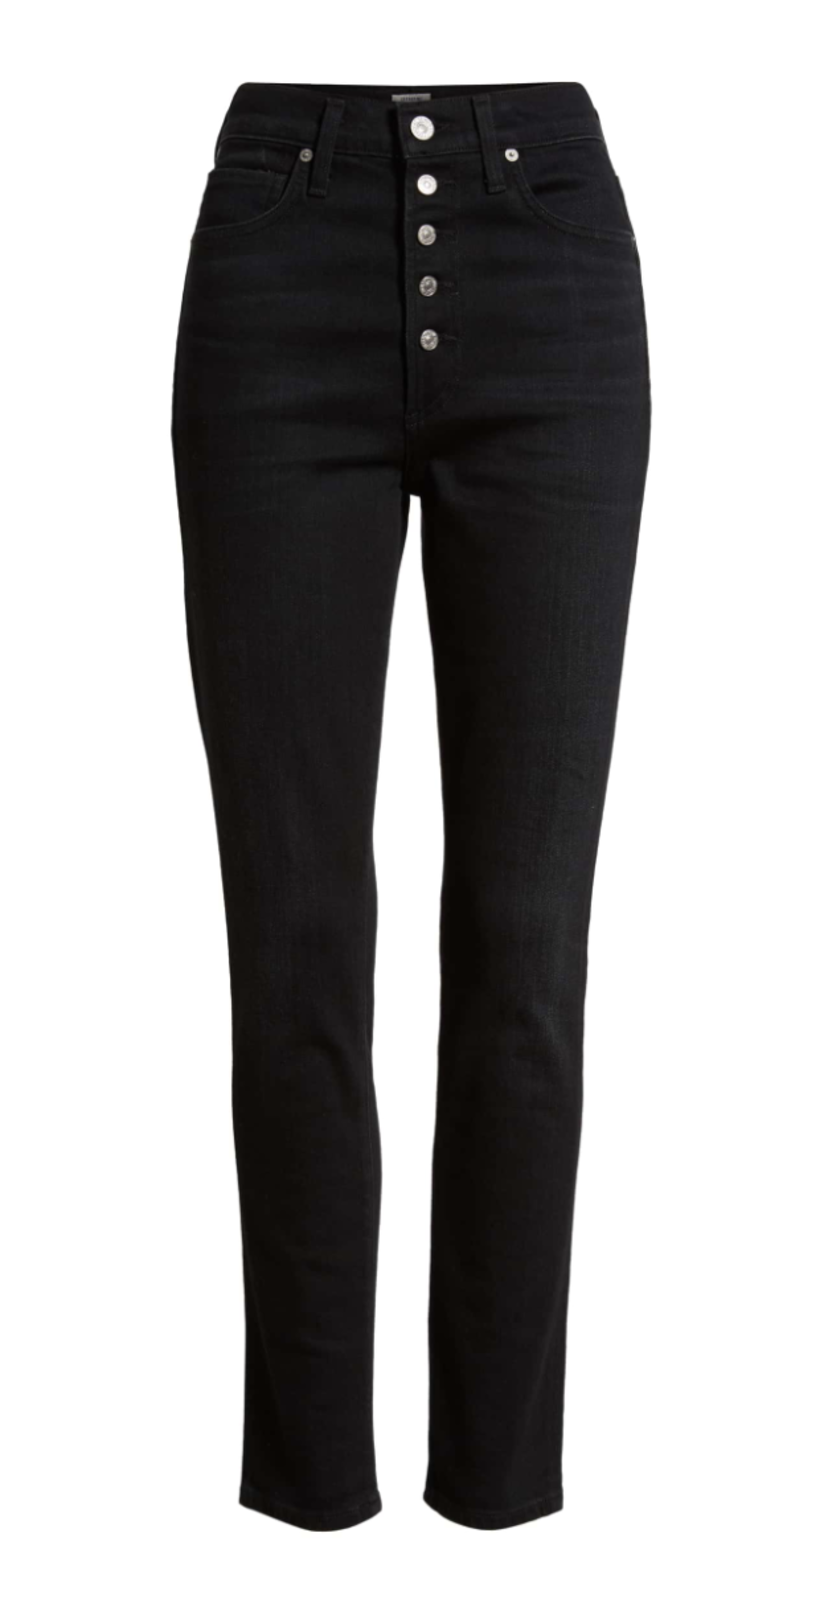 Citizens of Humanity Olivia High Waist Jeans in Licorice Pants